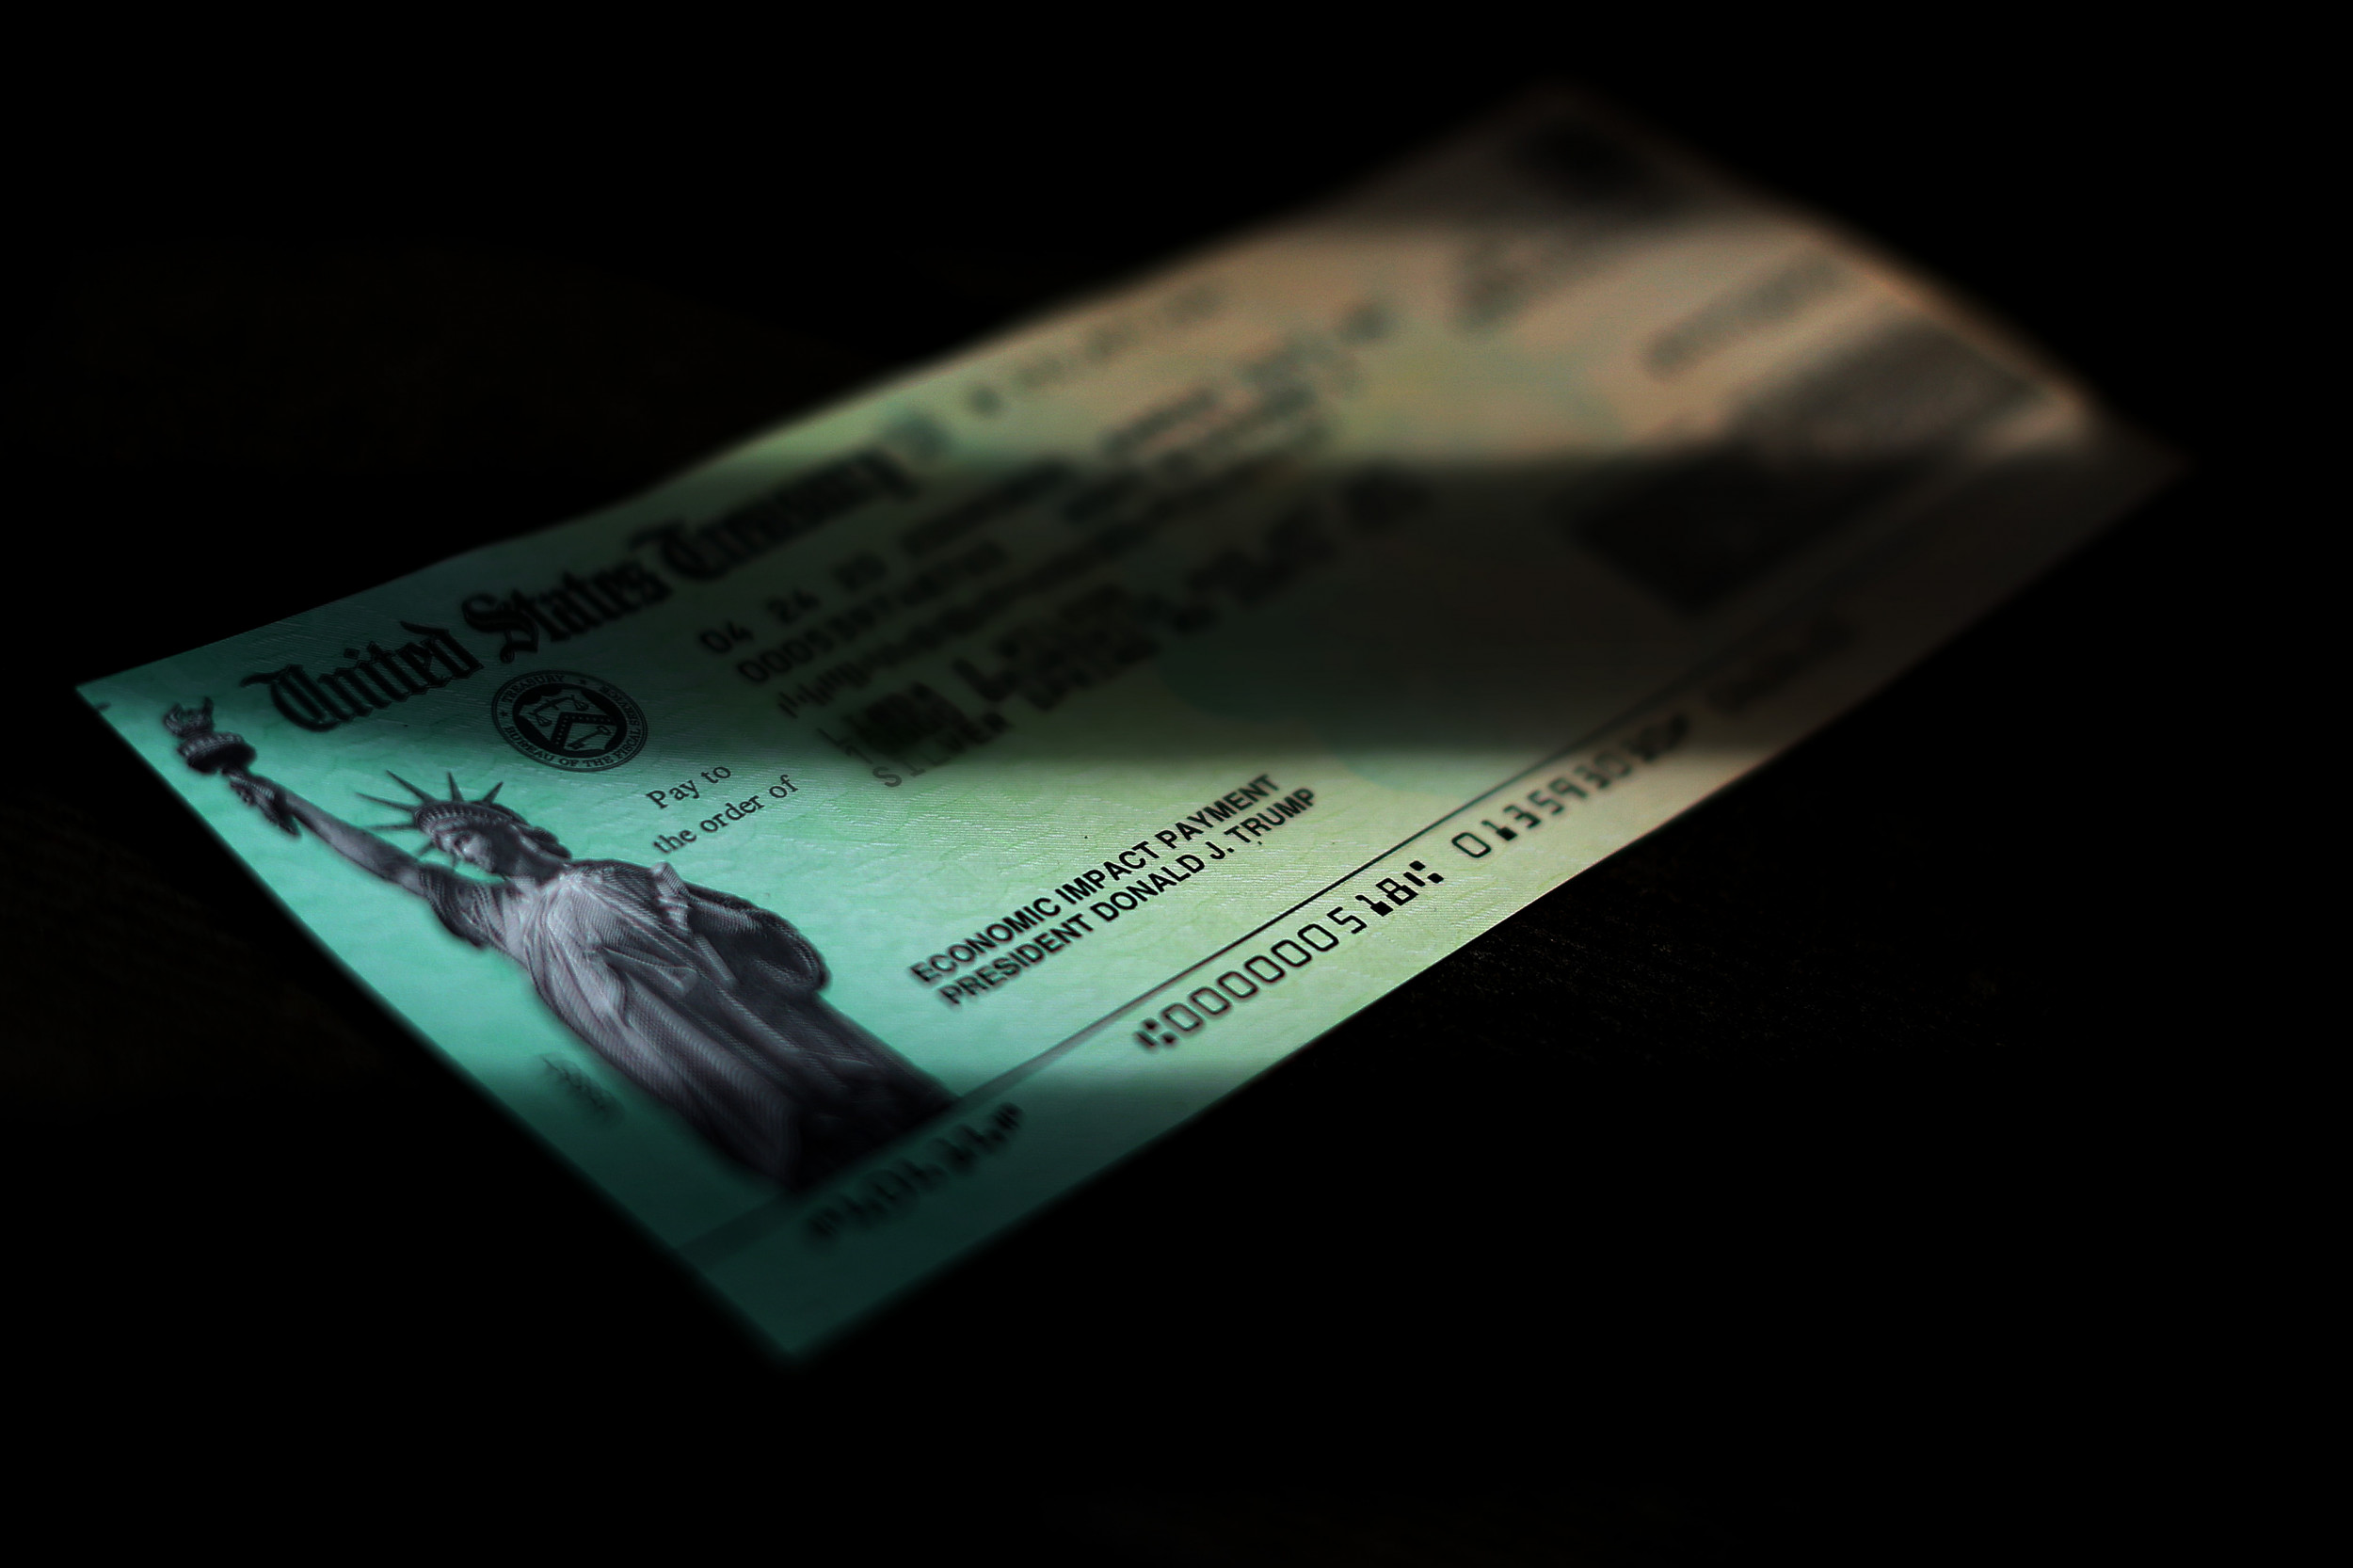 Extra Stimulus Check: What to Know About 'Plus-Up' Payments, How to Check if You'll Get One